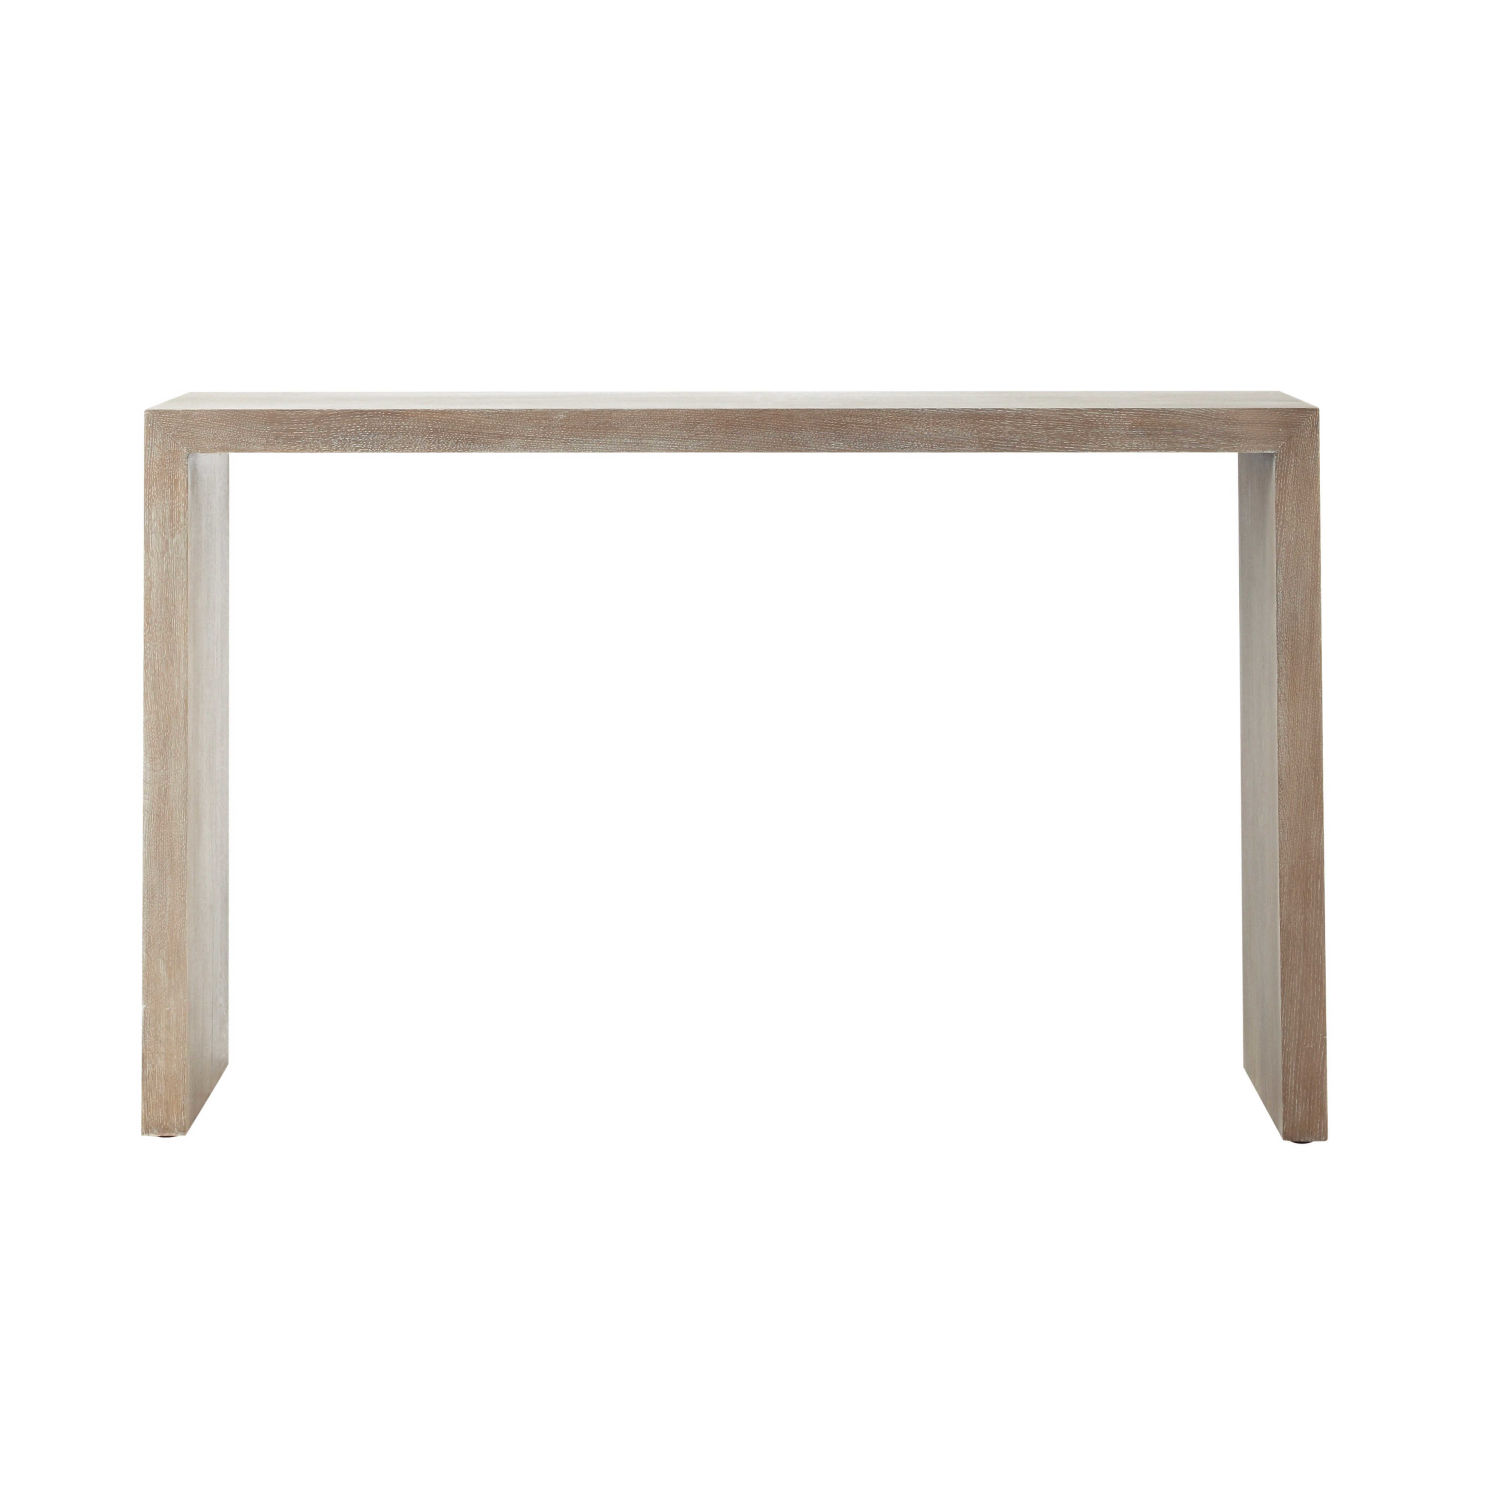 console en bois blanchi l 130 cm maisons du monde. Black Bedroom Furniture Sets. Home Design Ideas